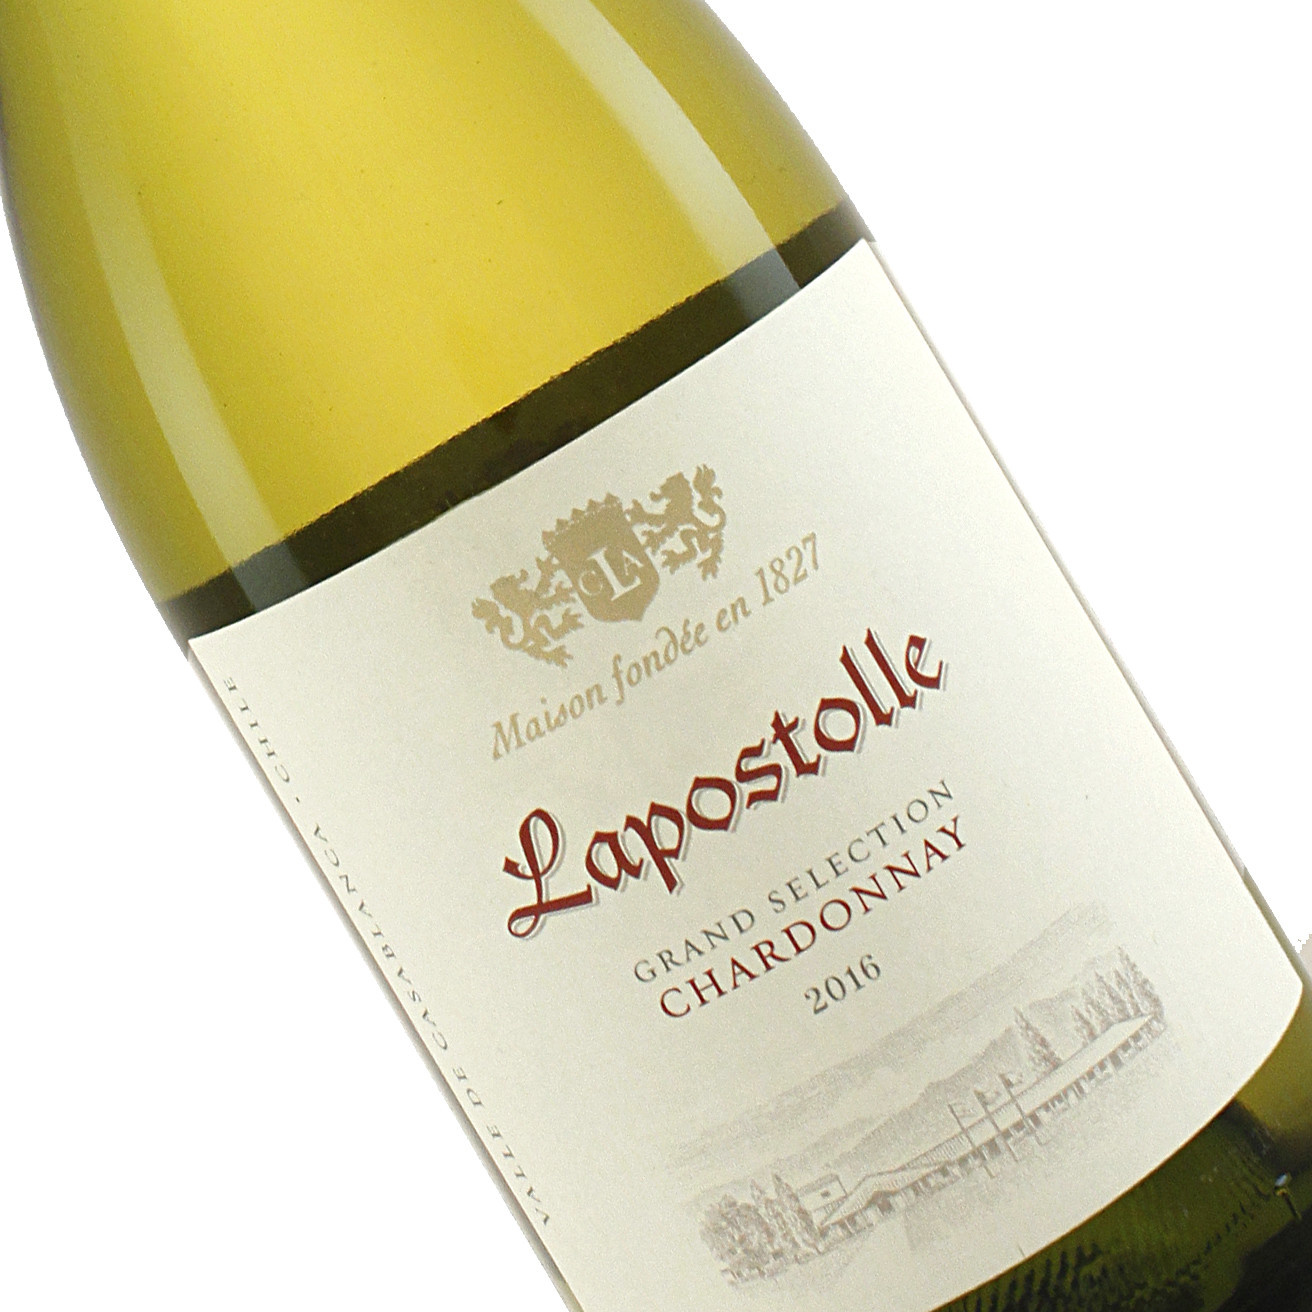 Lapostolle 2016 Grand Selection Chardonnay, Chile